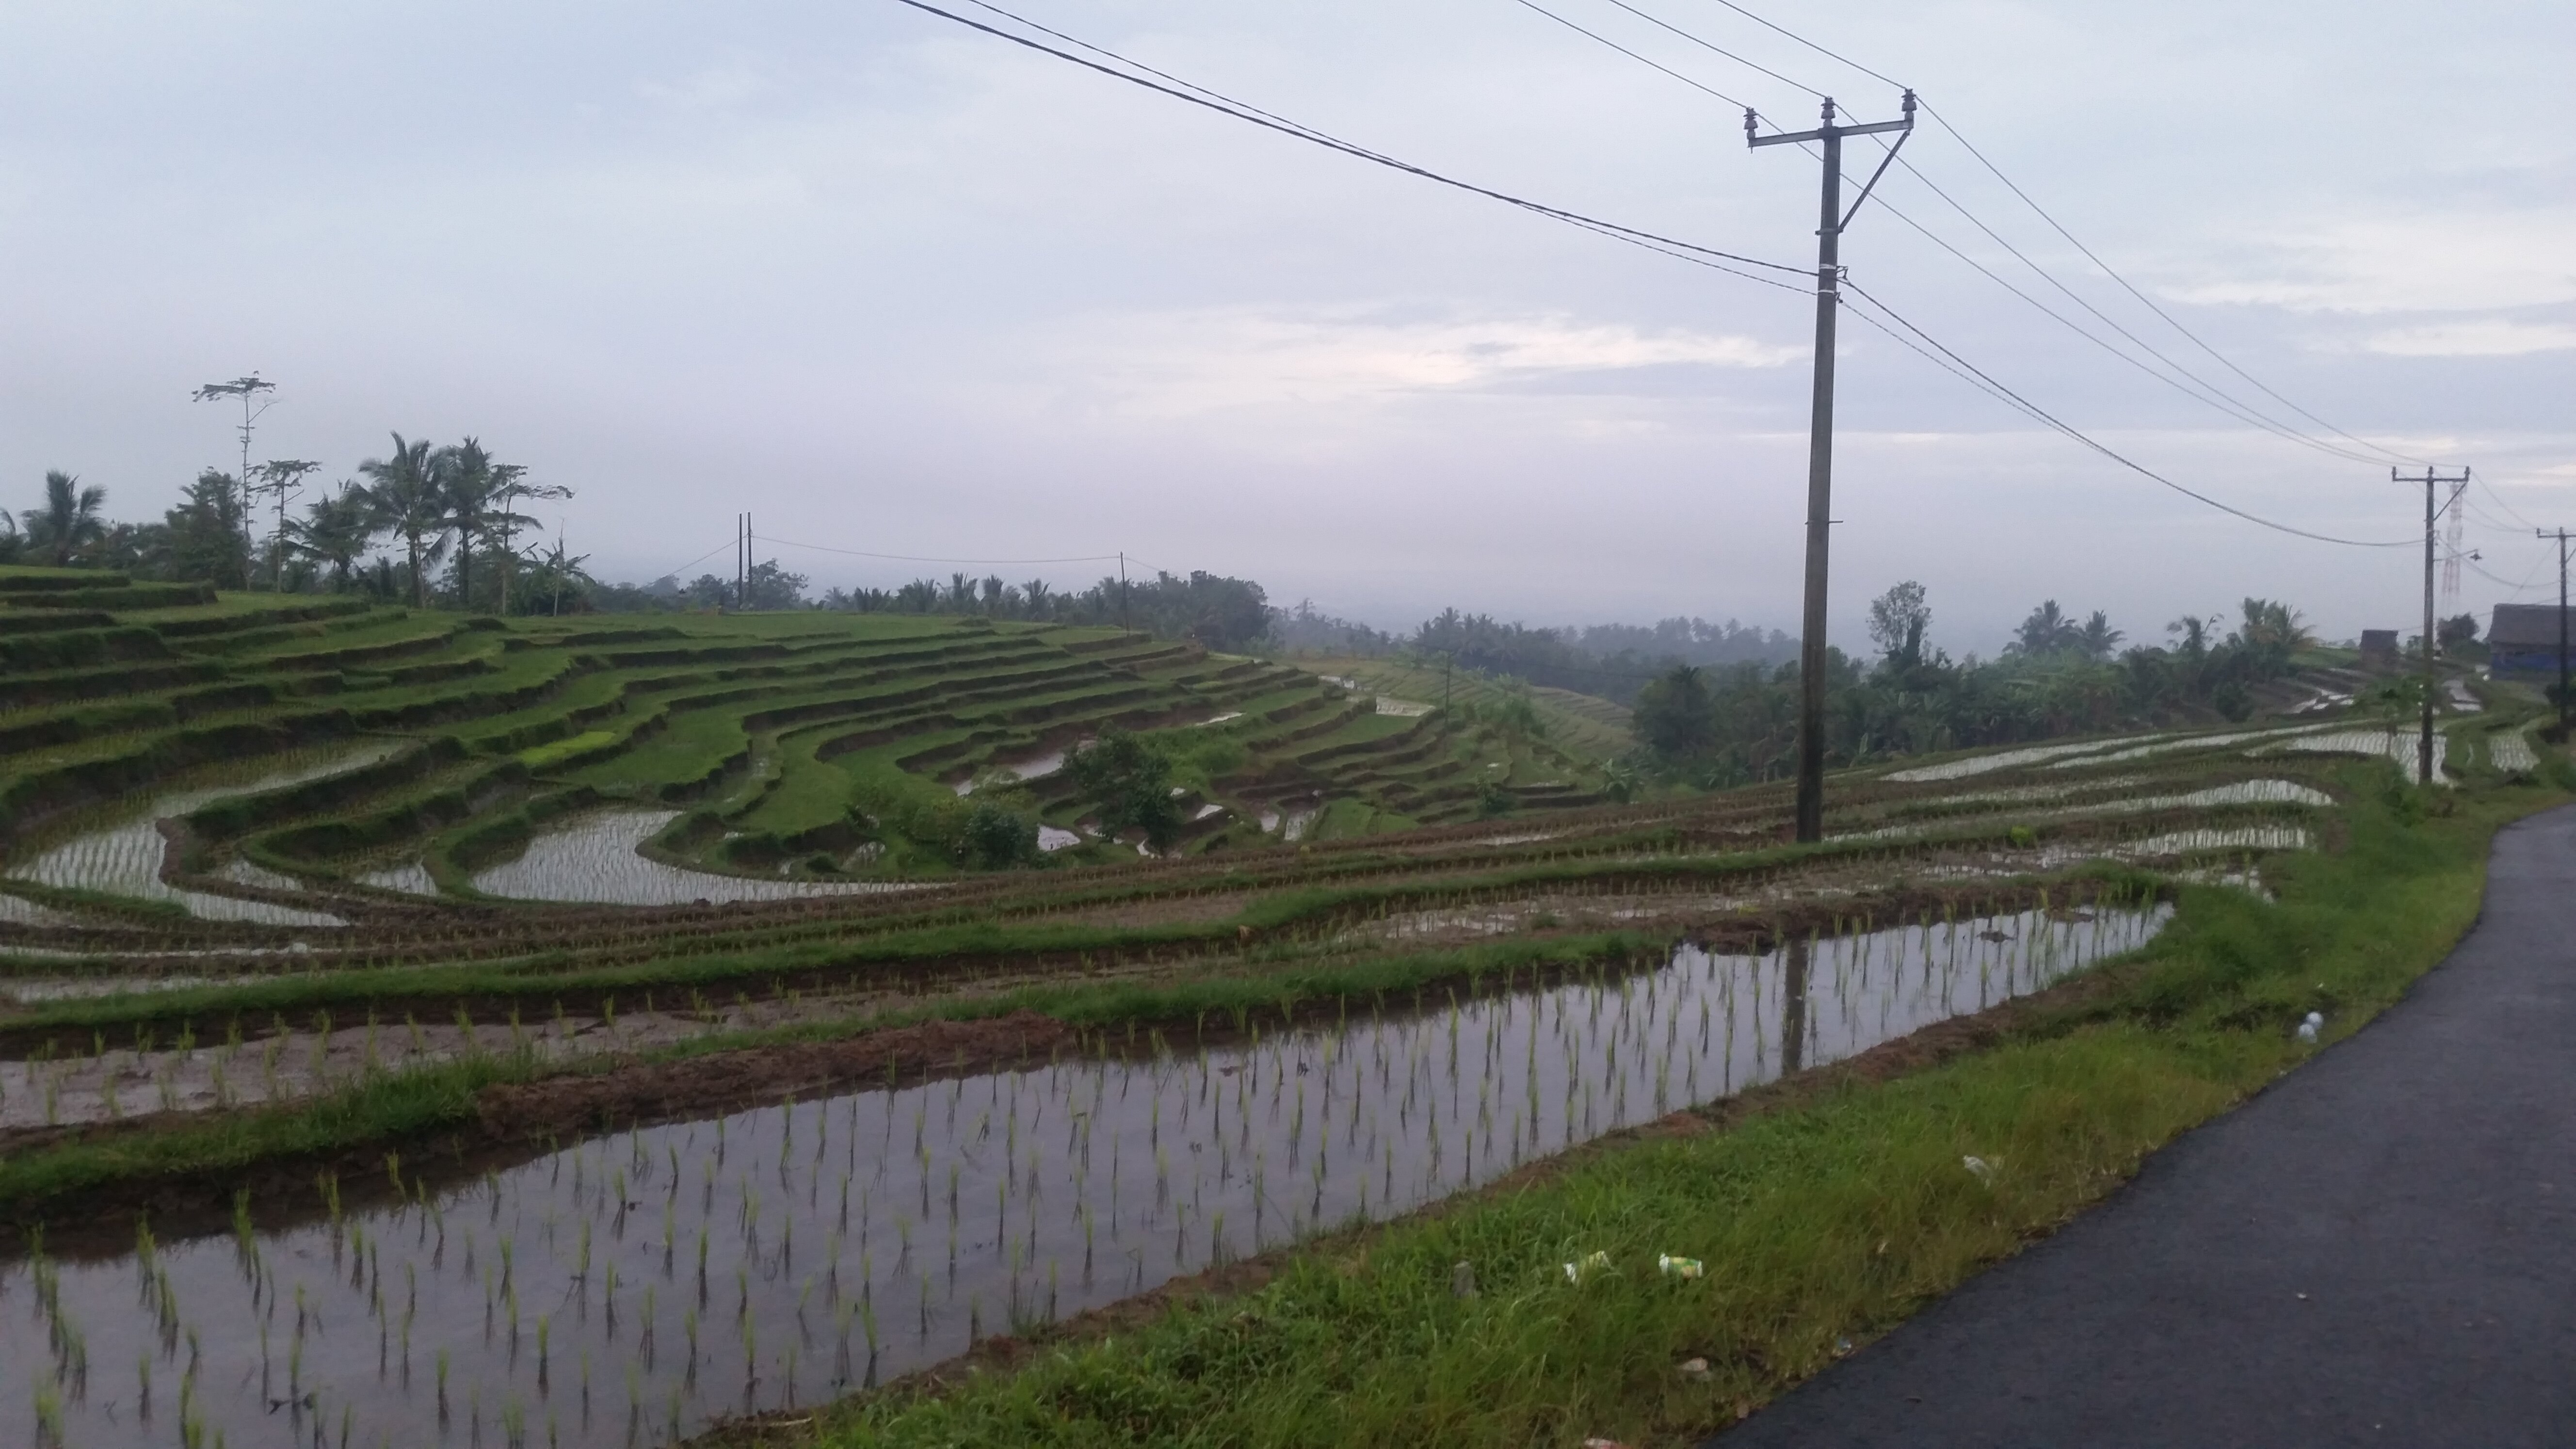 Rice paddy that the procession passed.